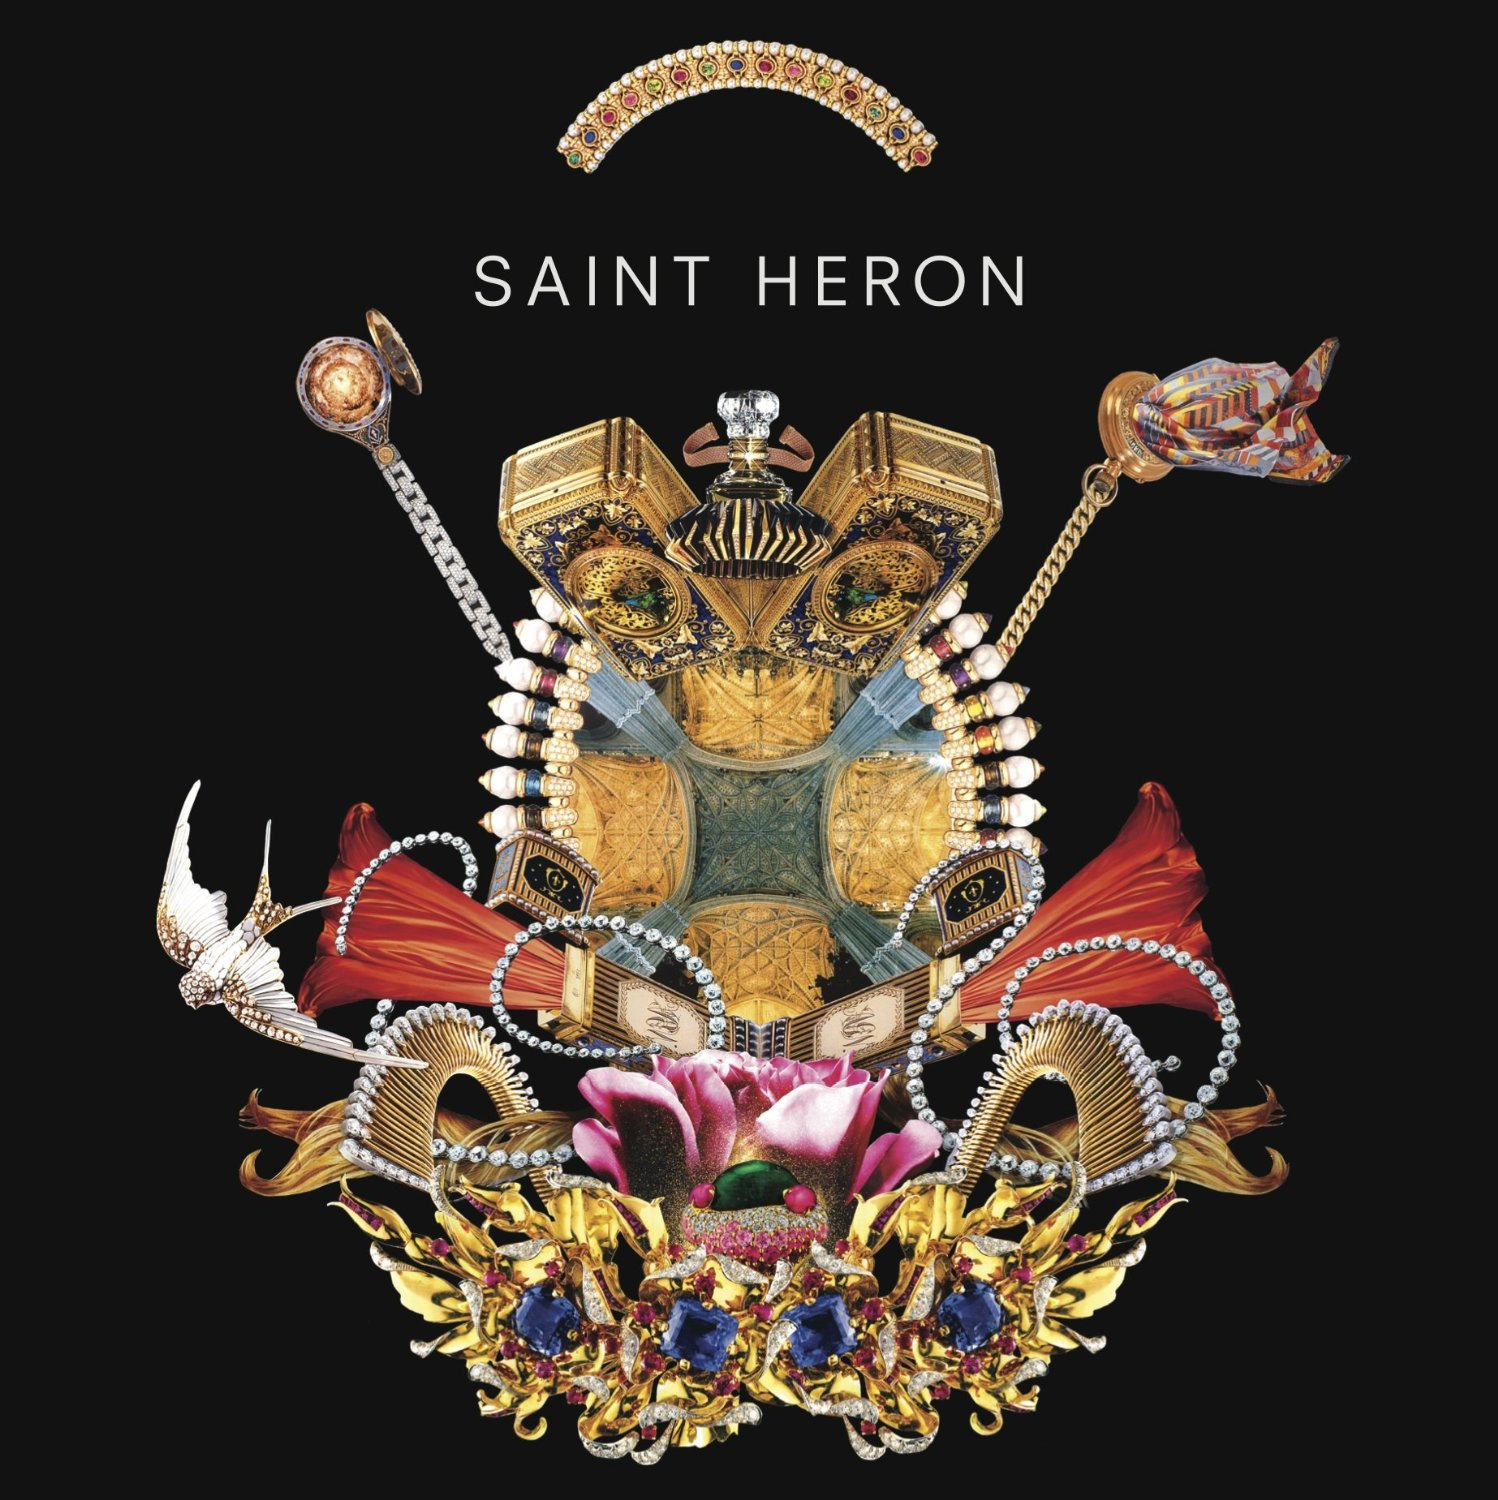 saint-records-saint-heron.jpg